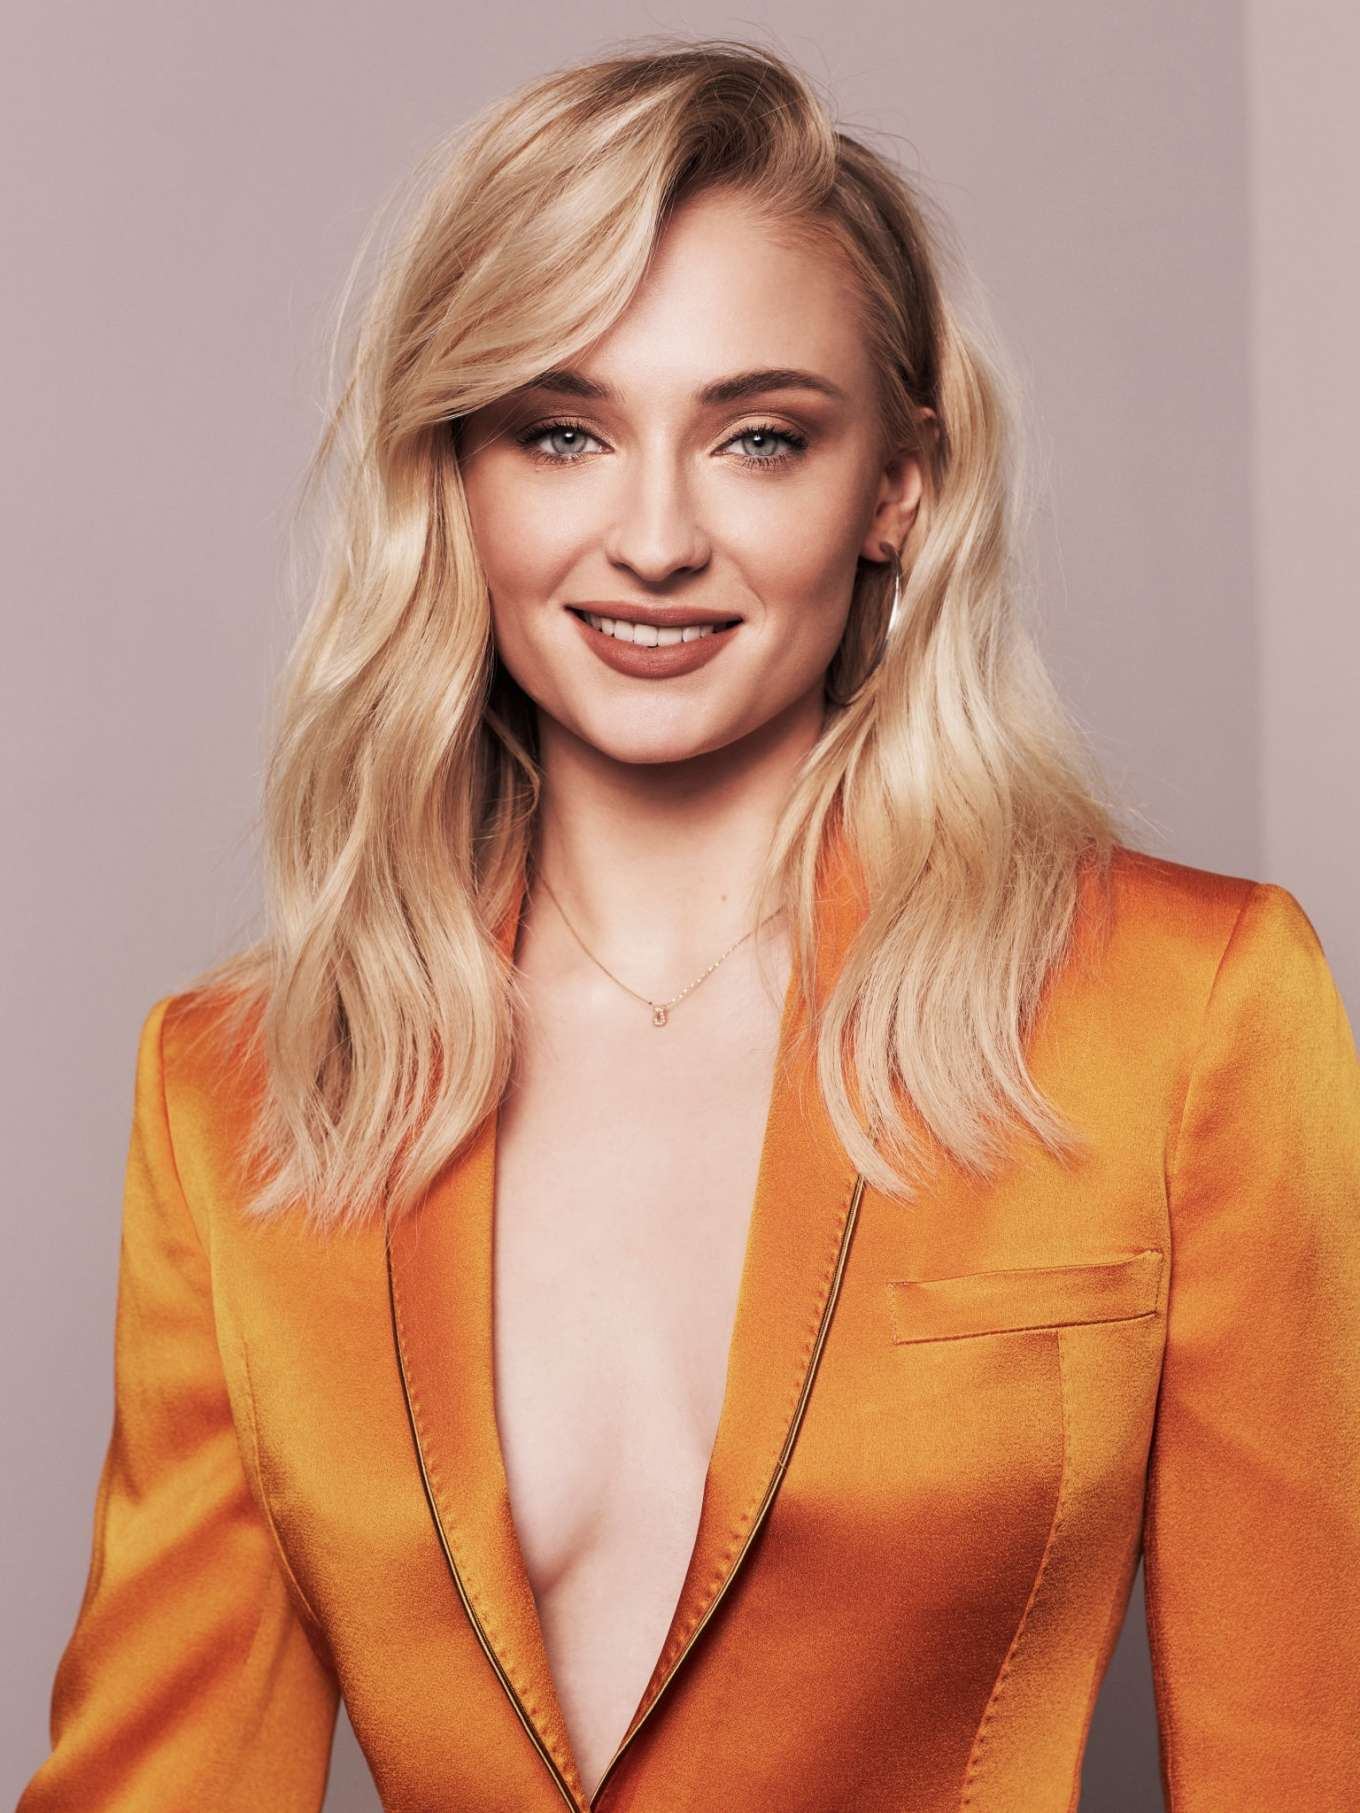 Sophie Turner 2019 : Sophie Turner by John Russo 2019 for 20th Century Fox Portraits-23